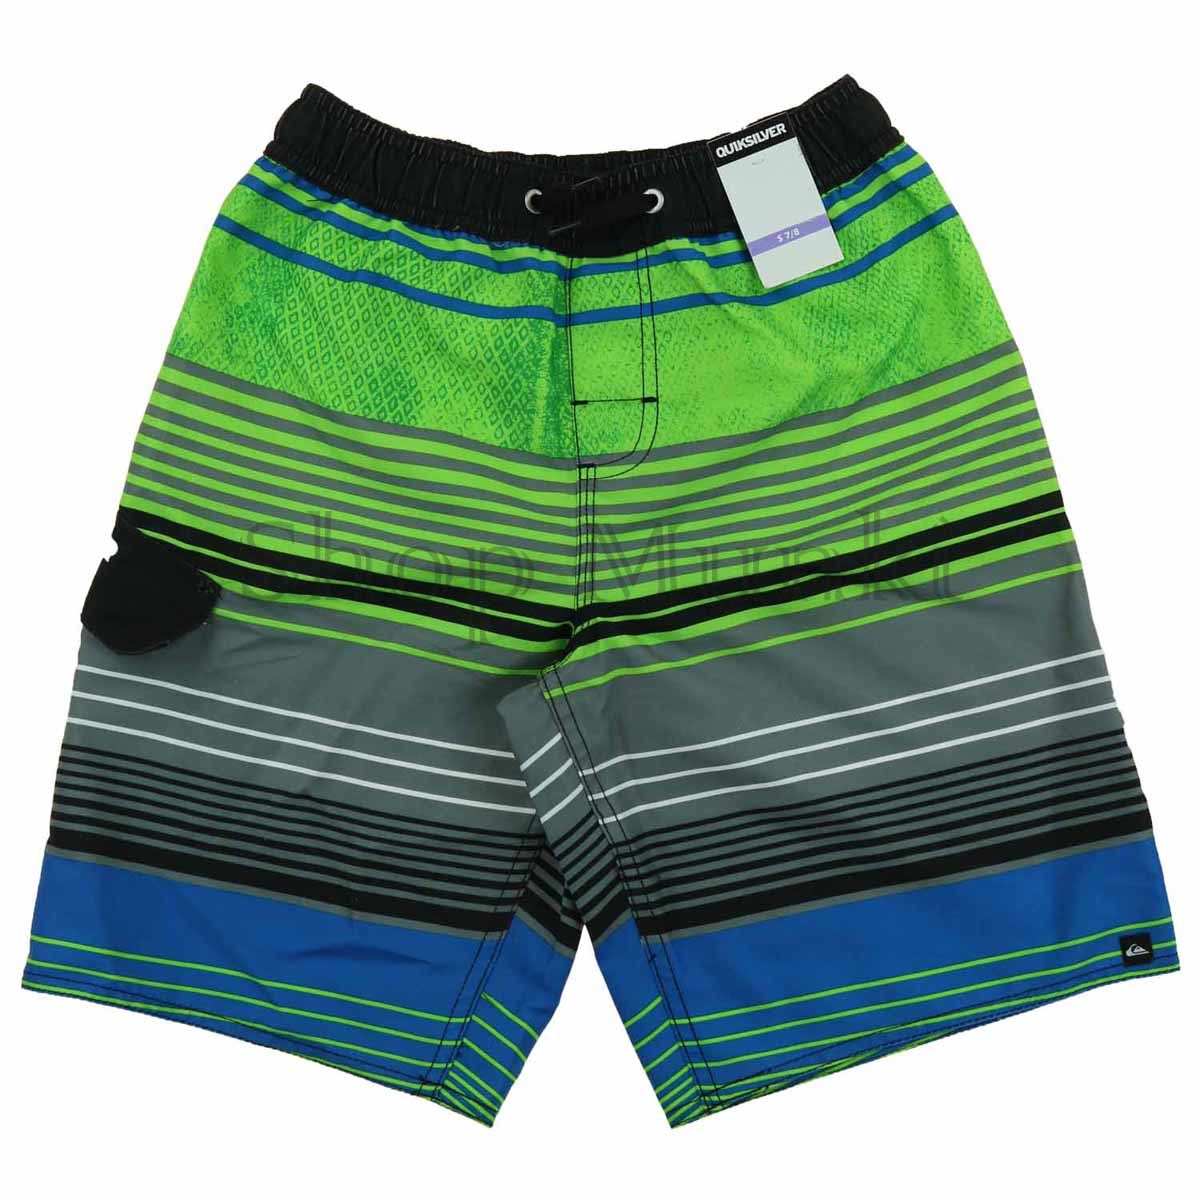 41c0dab525 Quiksilver Boys Board Shorts - Year of Clean Water